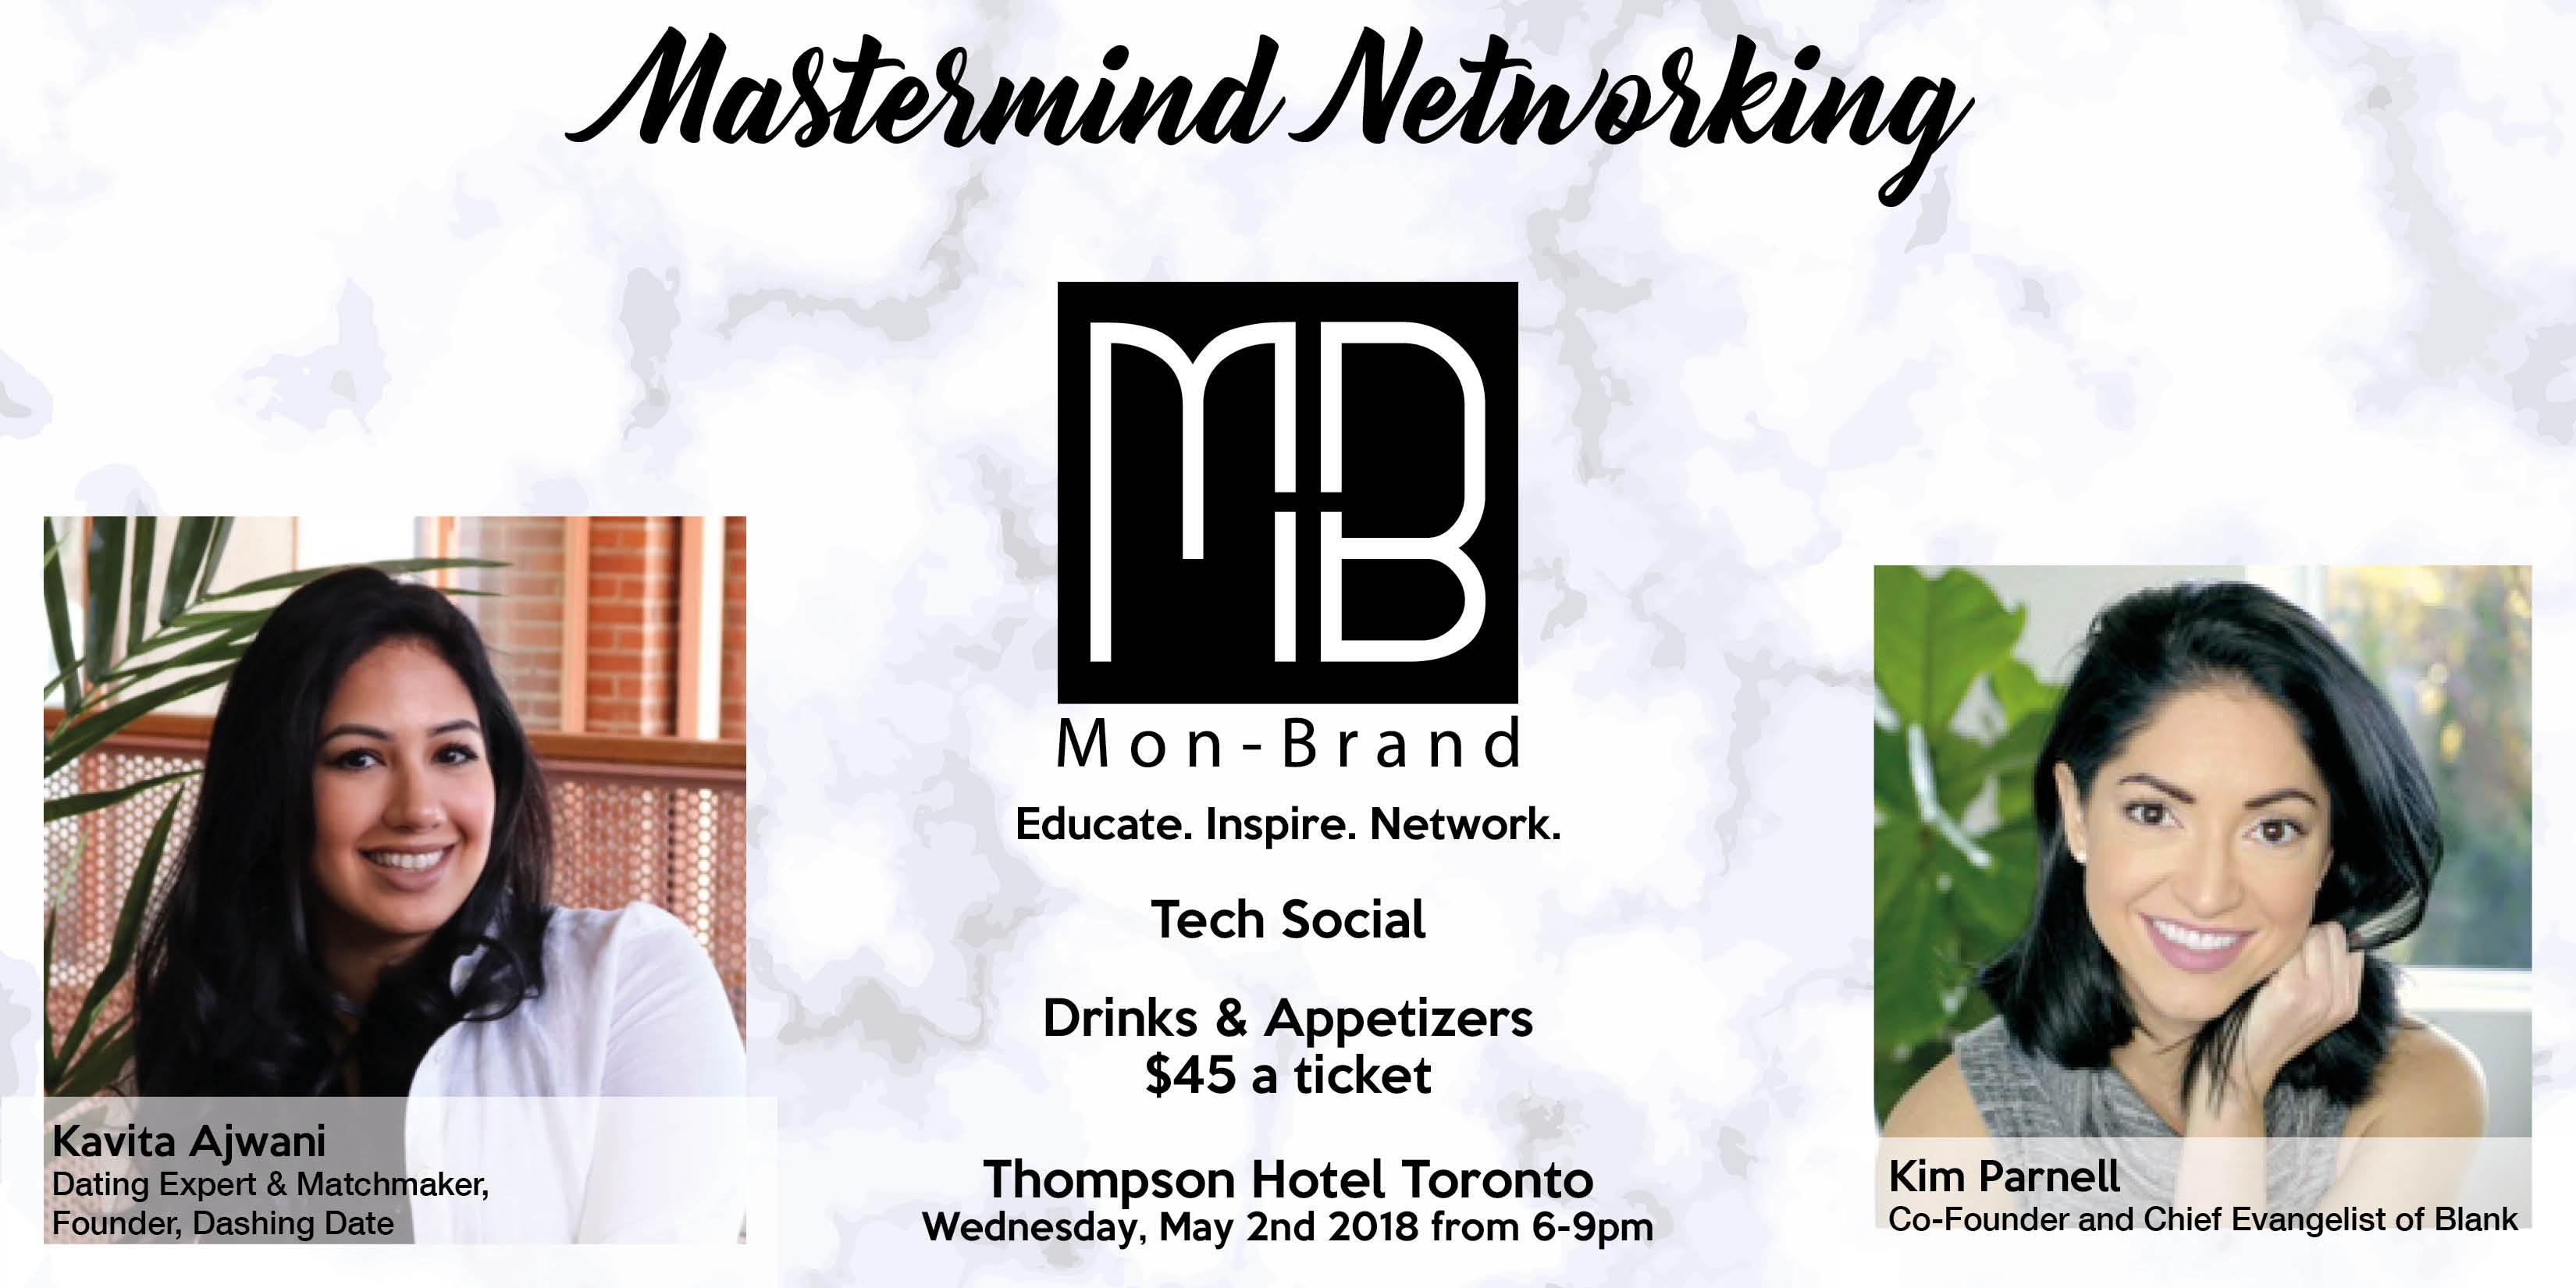 Mon-Brand Mastermind Networking Event at Thompson Toronto, Toronto